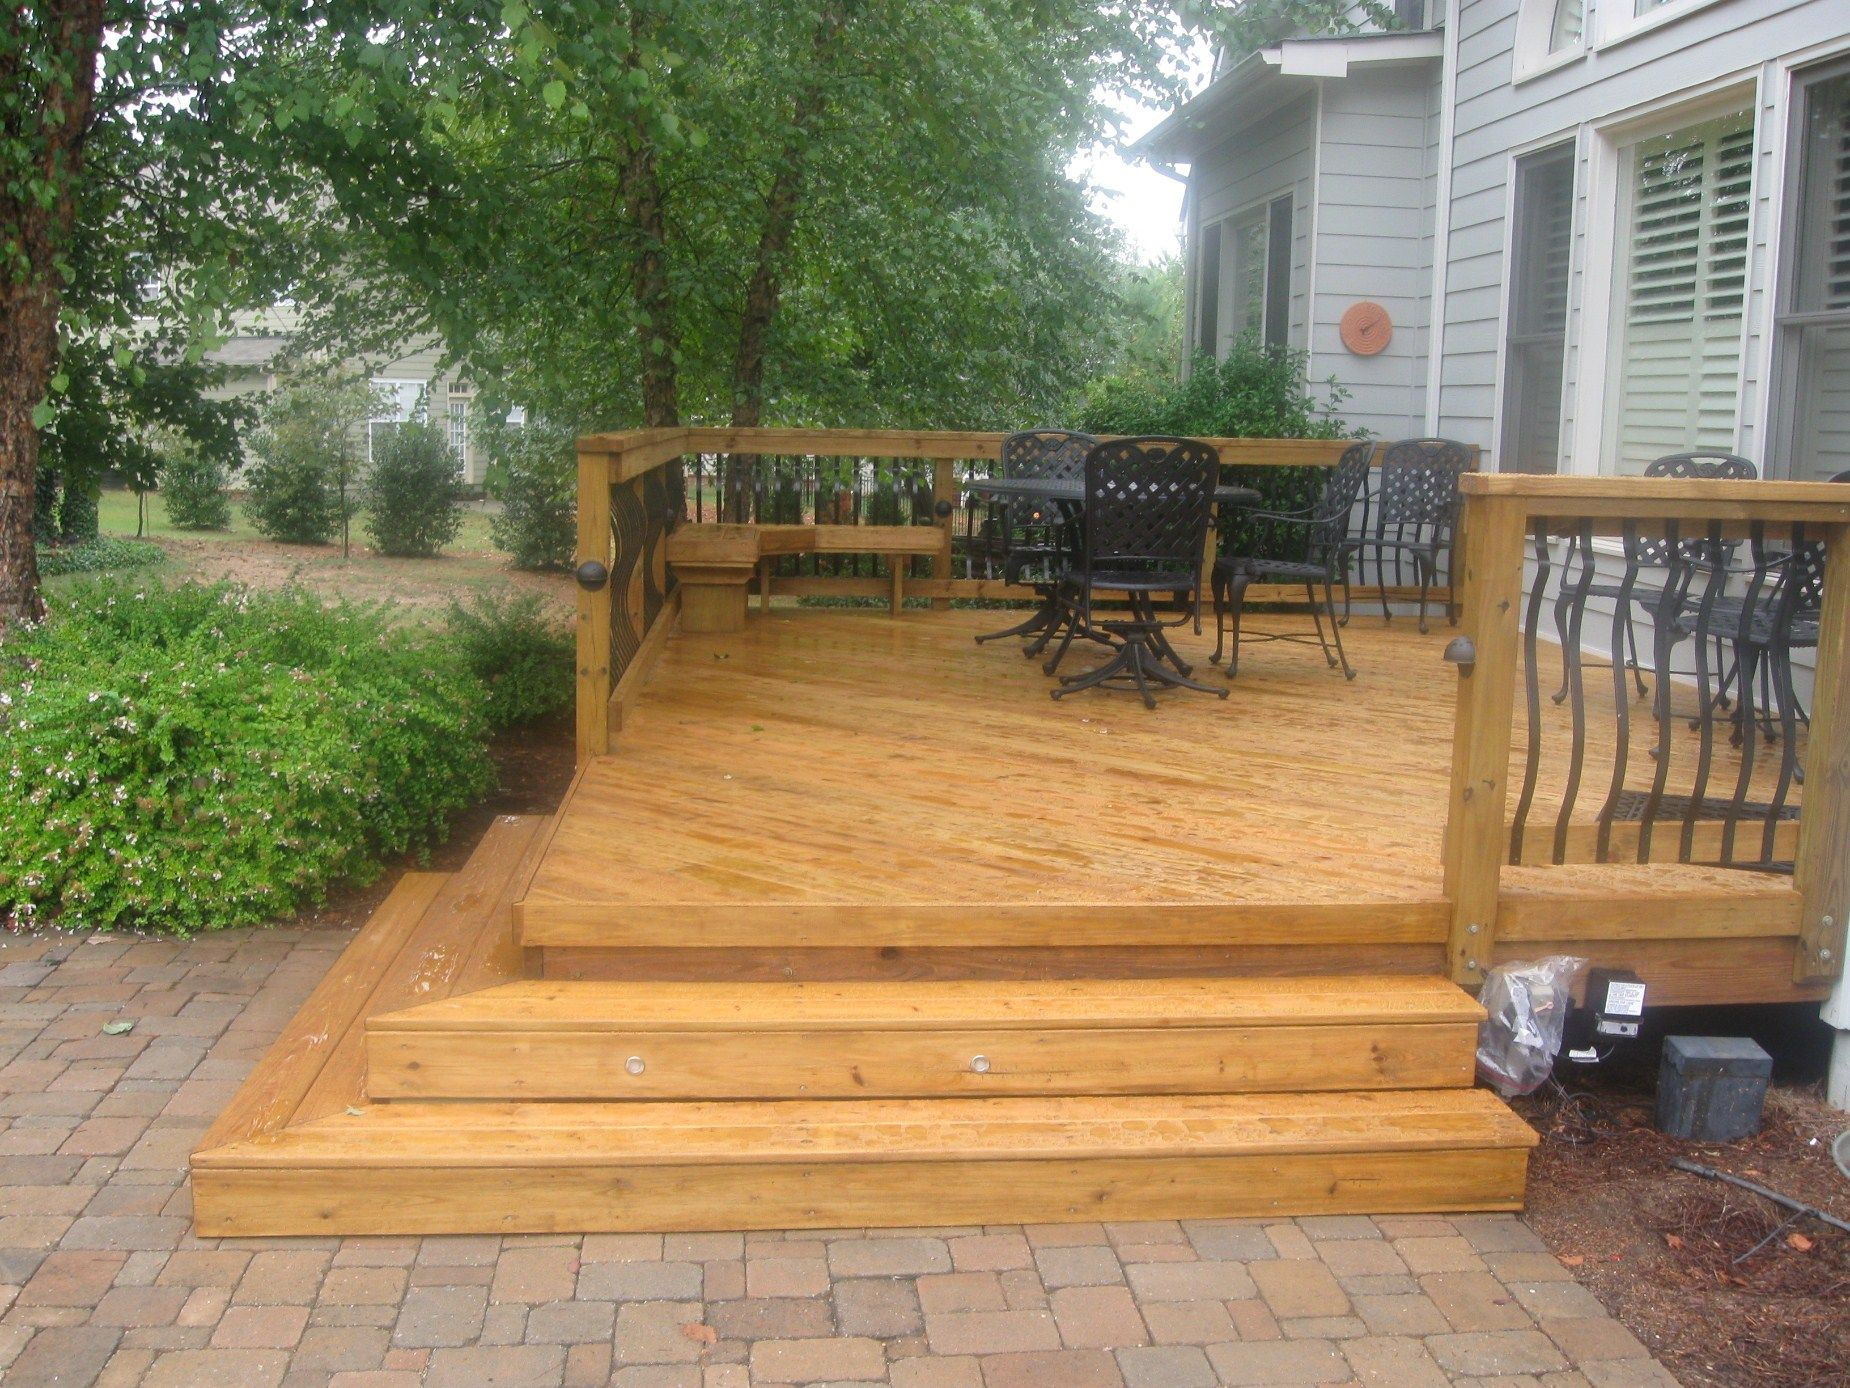 ideas for decks decorating wood deck design ideas for low deck designs deck